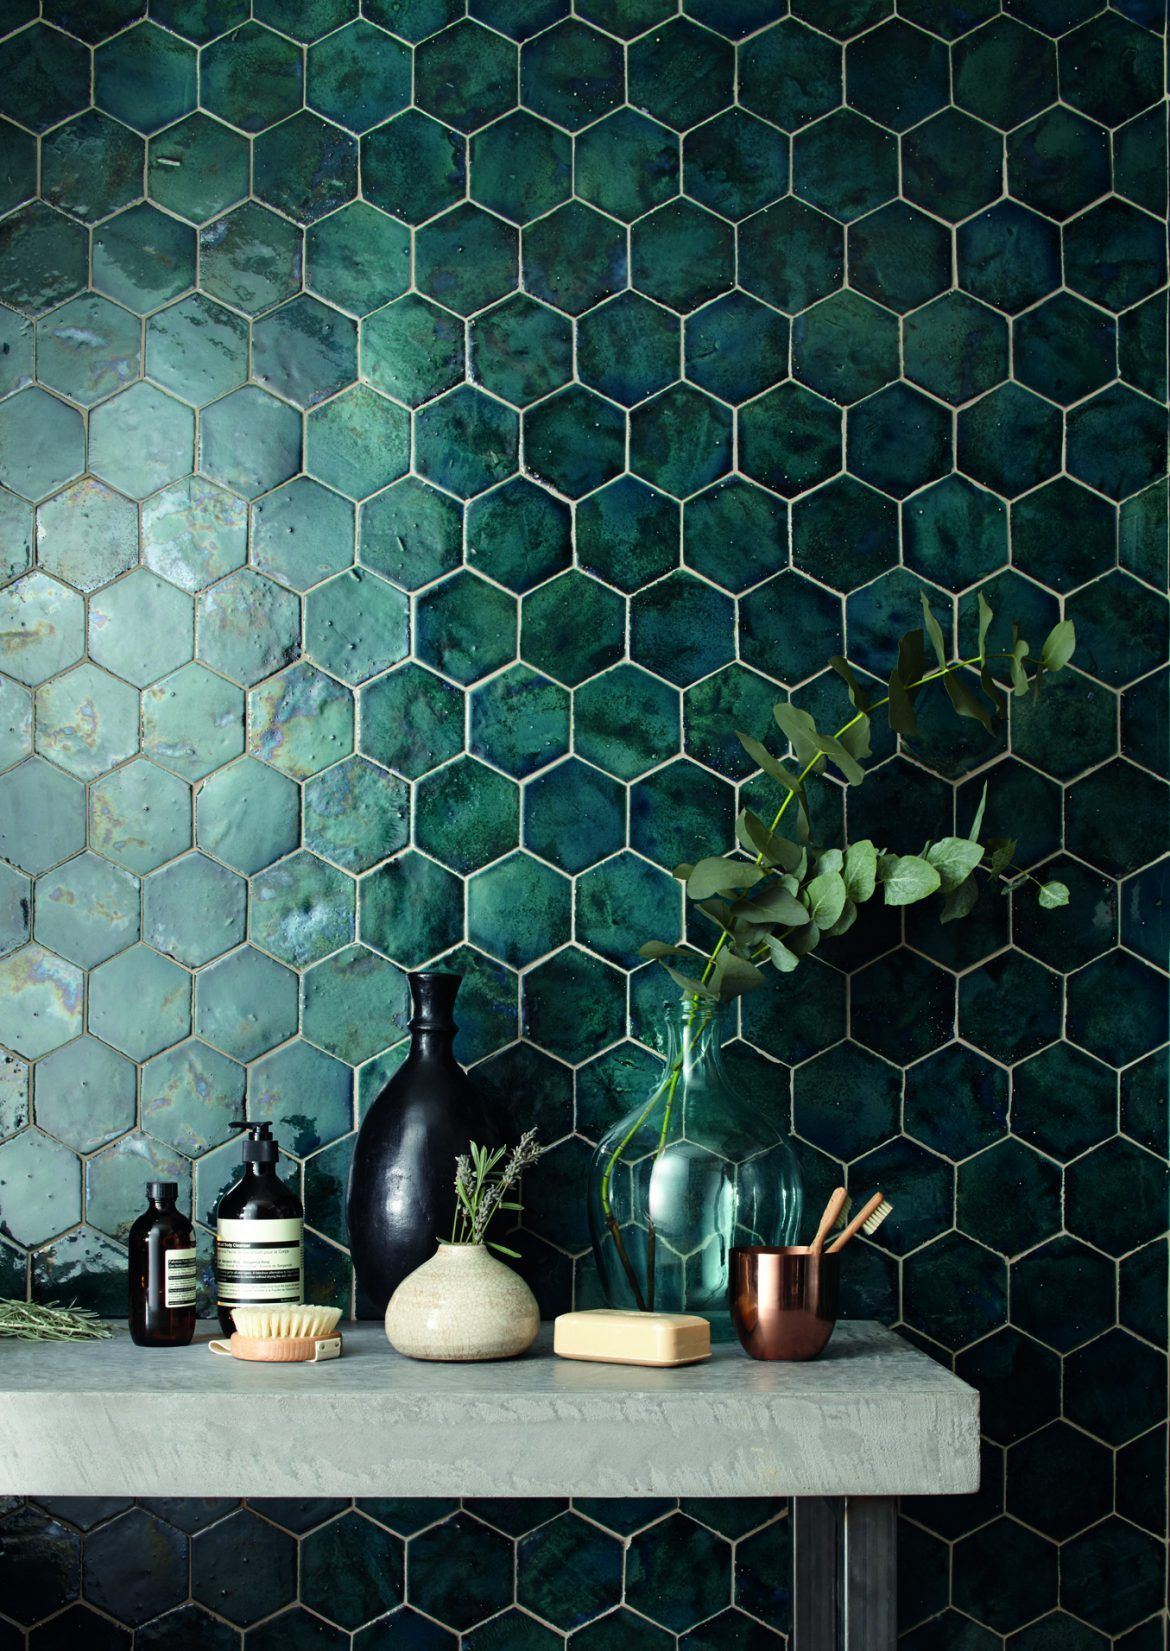 Domus Tile Uk Terracotta Range Im In Love With The Green Tile Its So Interesting And Different But Still In Tile Trends Handmade Home Decor House Design